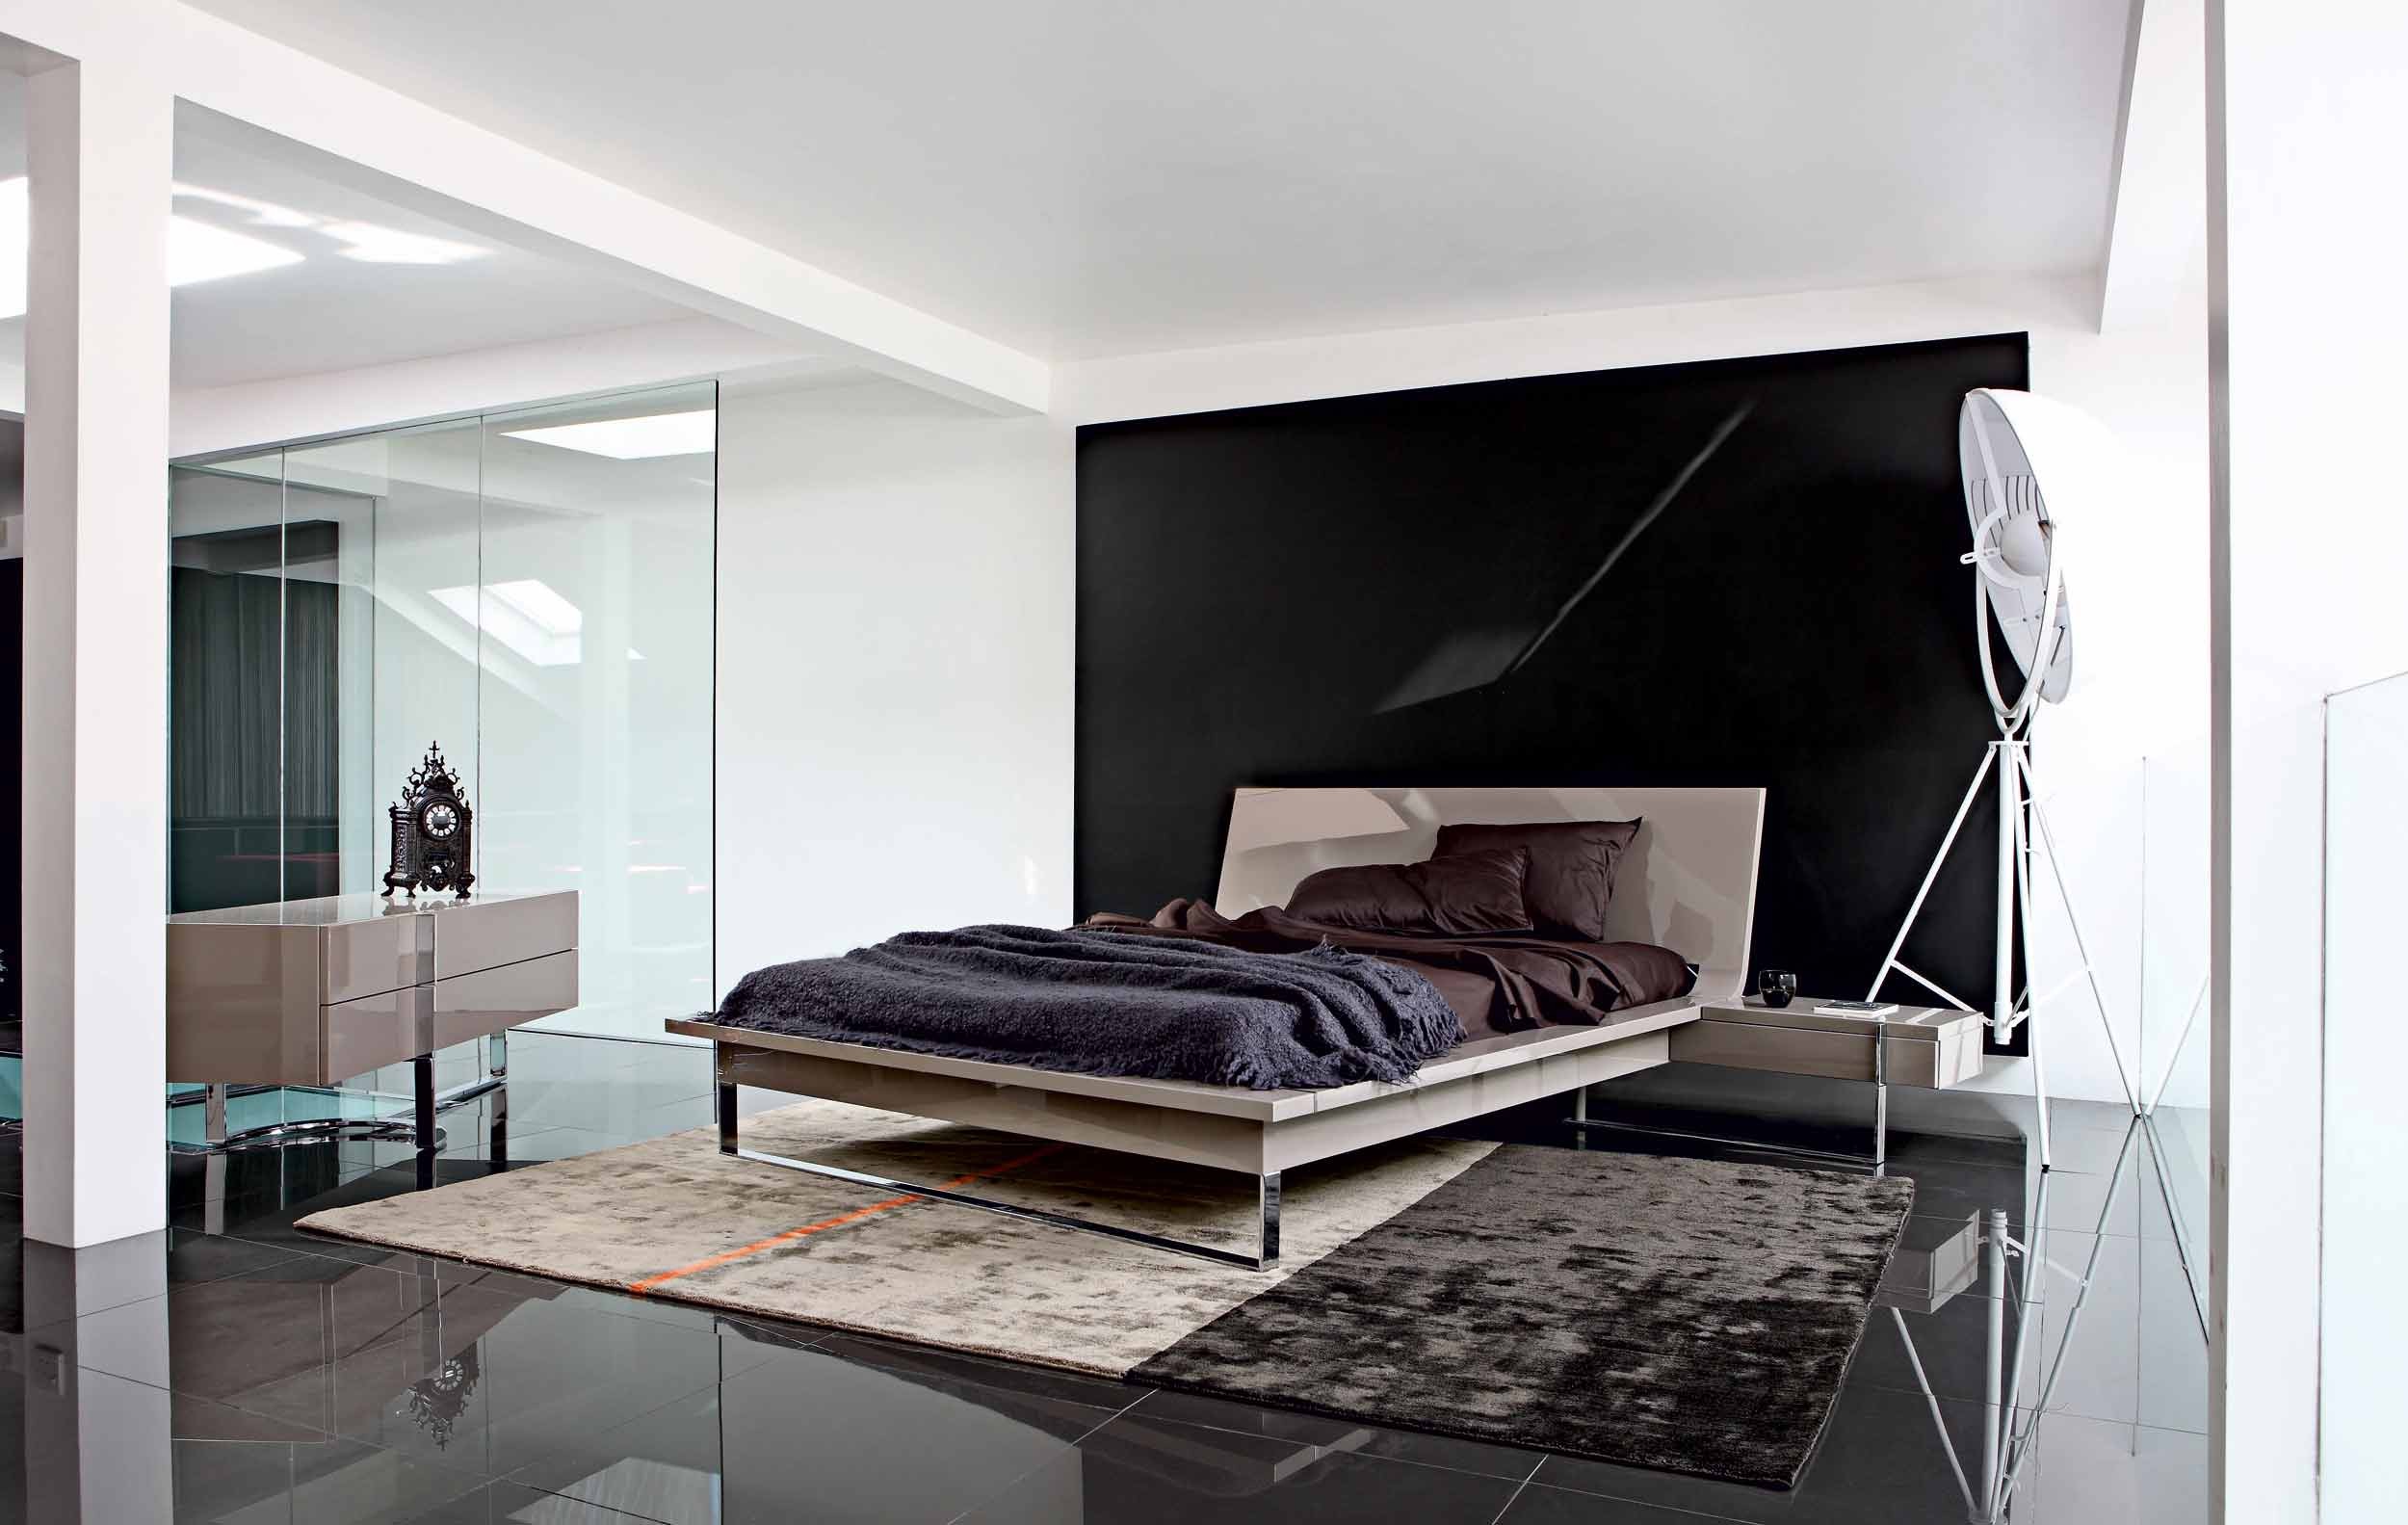 Minimalist bedroom interior design ideas for Small bedroom design minimalist